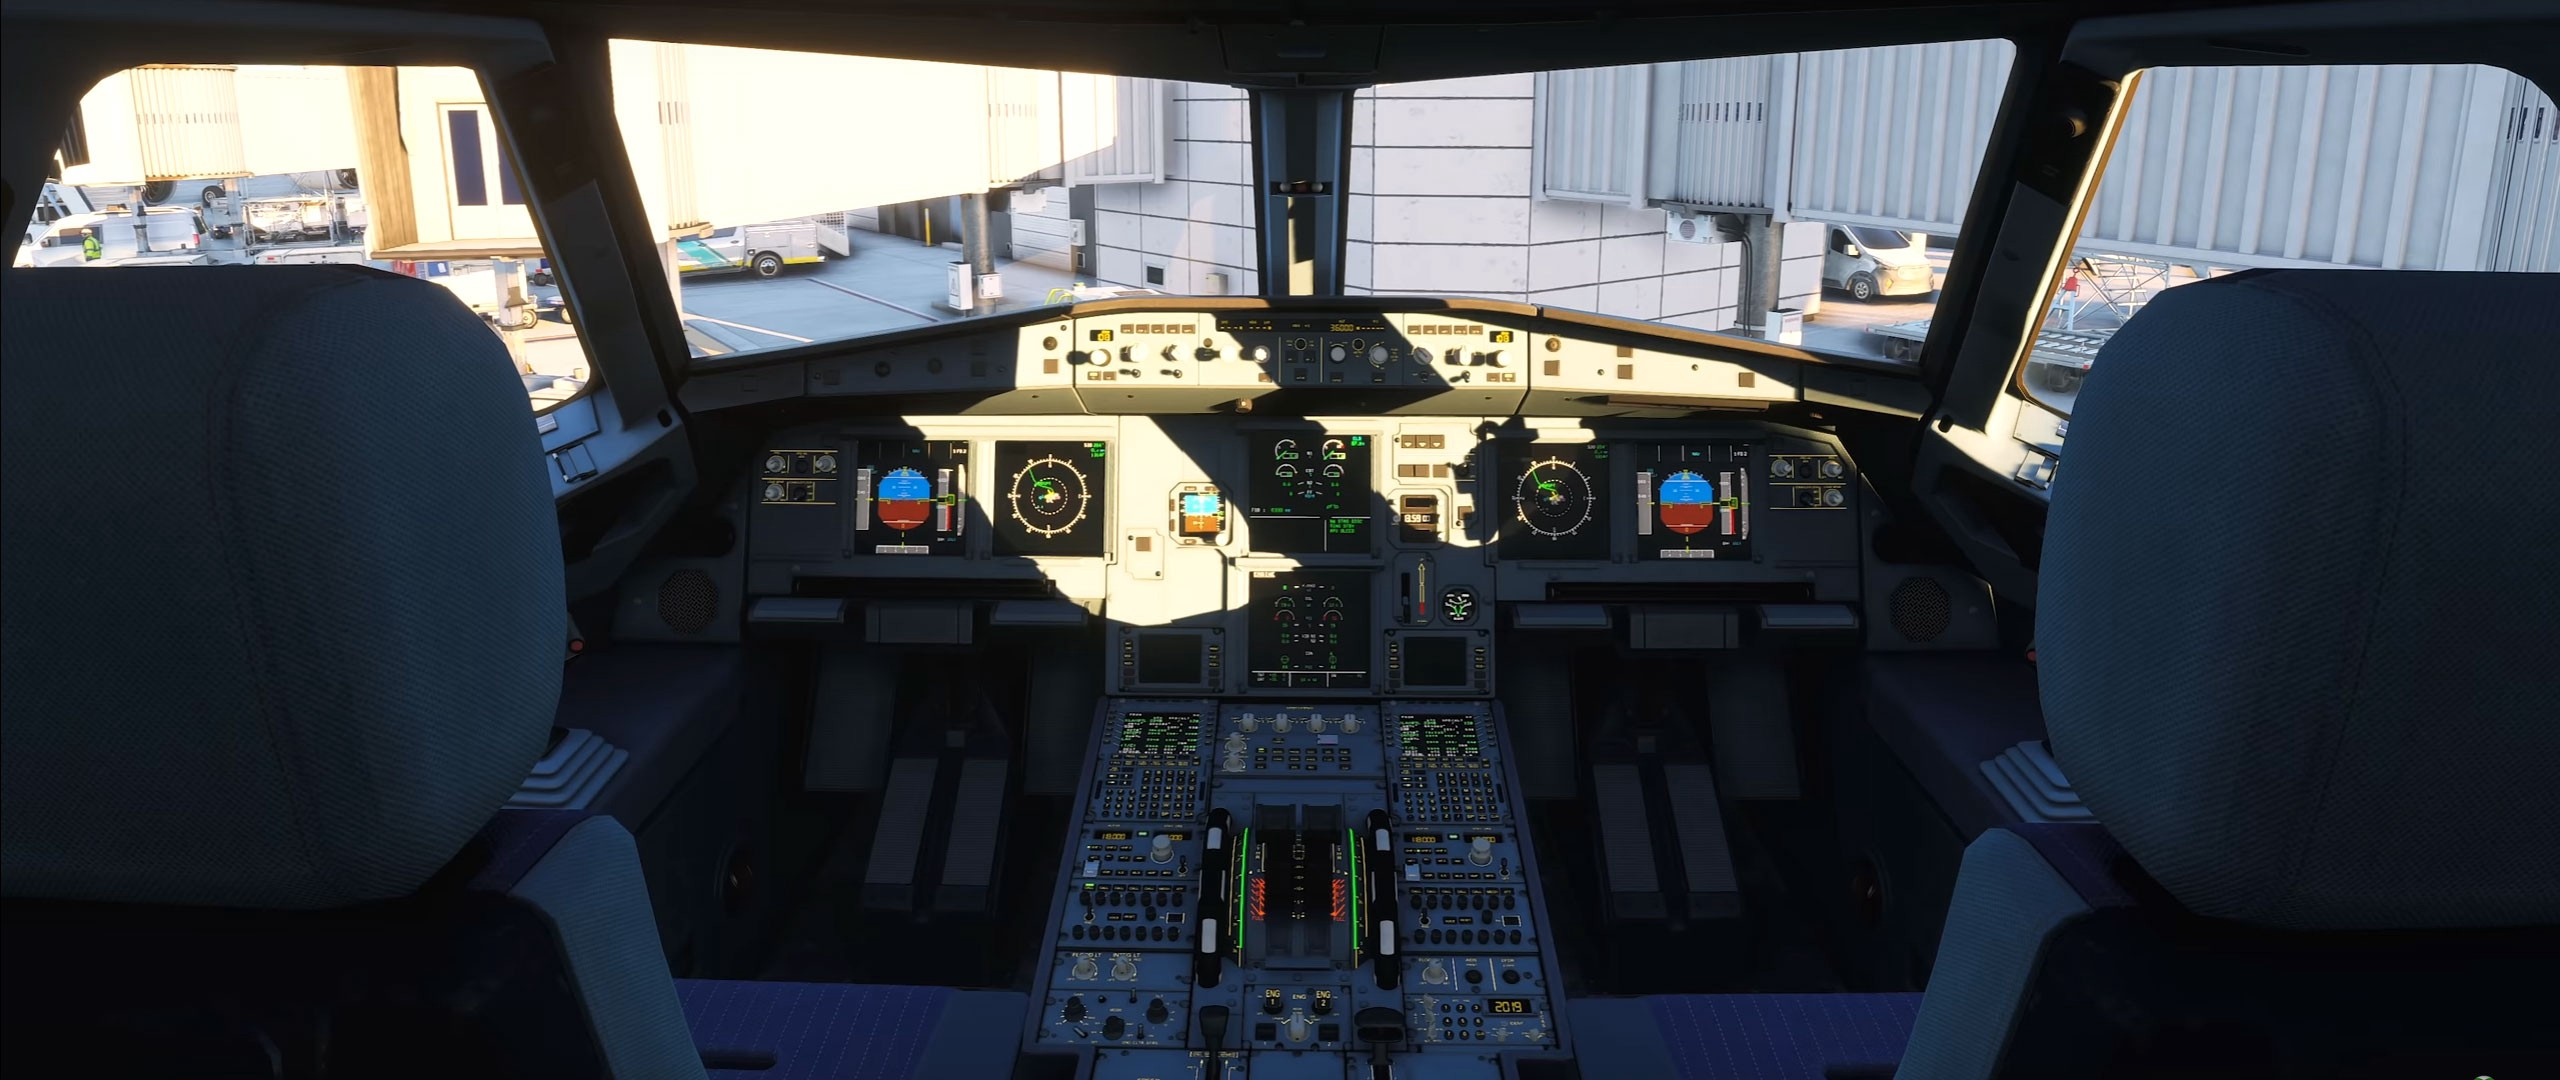 Is Microsoft hiding the big jets in Flight Simulator? Time